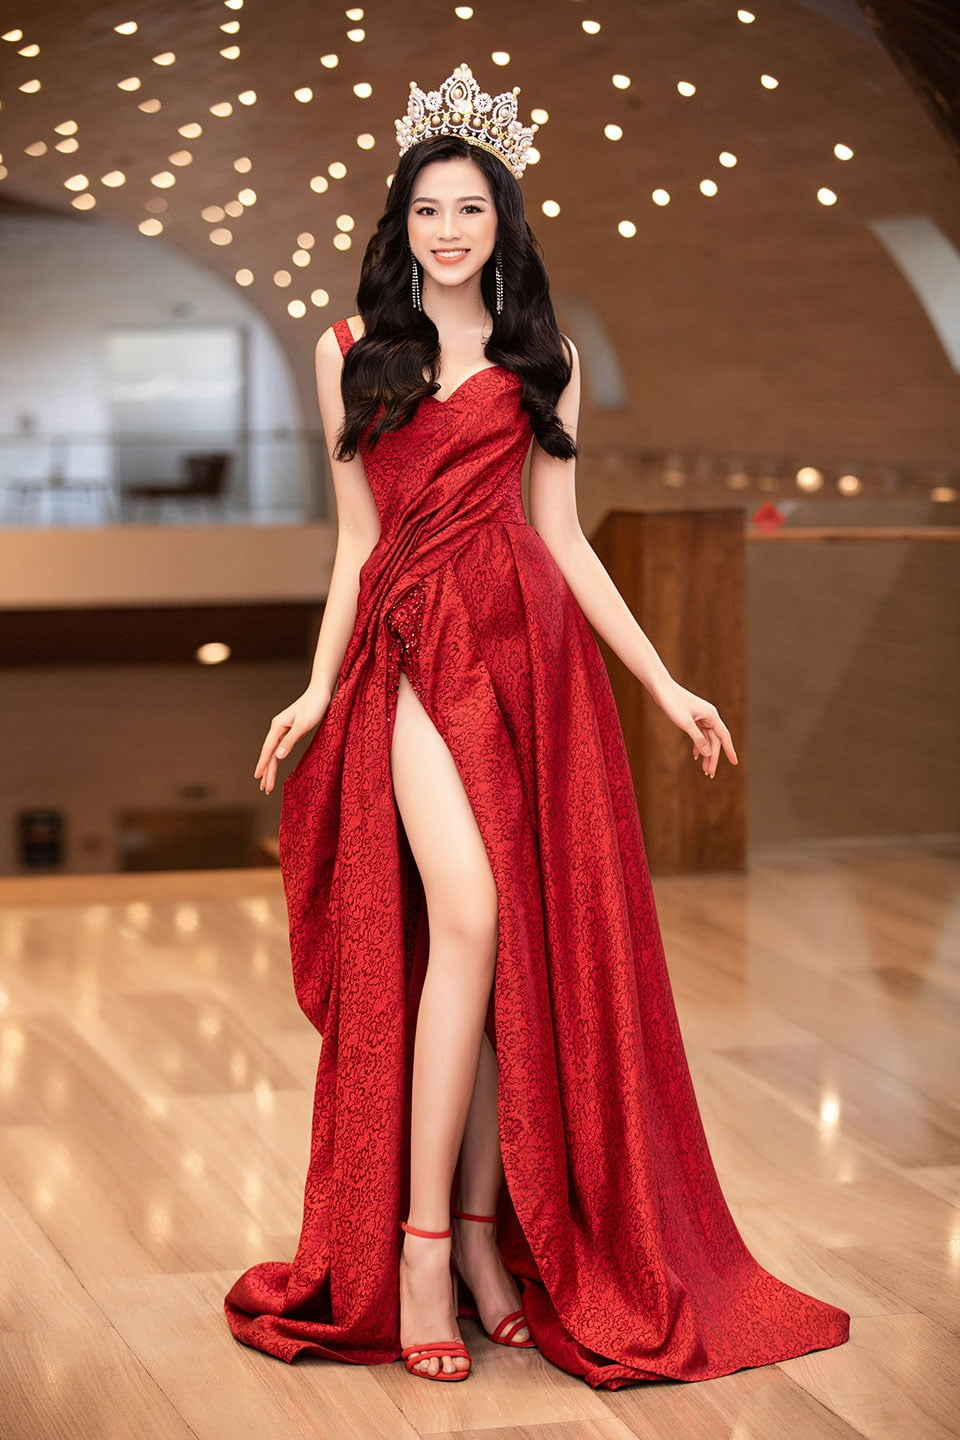 One-piece garment, Shoulder, Smile, Neck, Dress, Fashion, Waist, Sleeve, Thigh, Gown